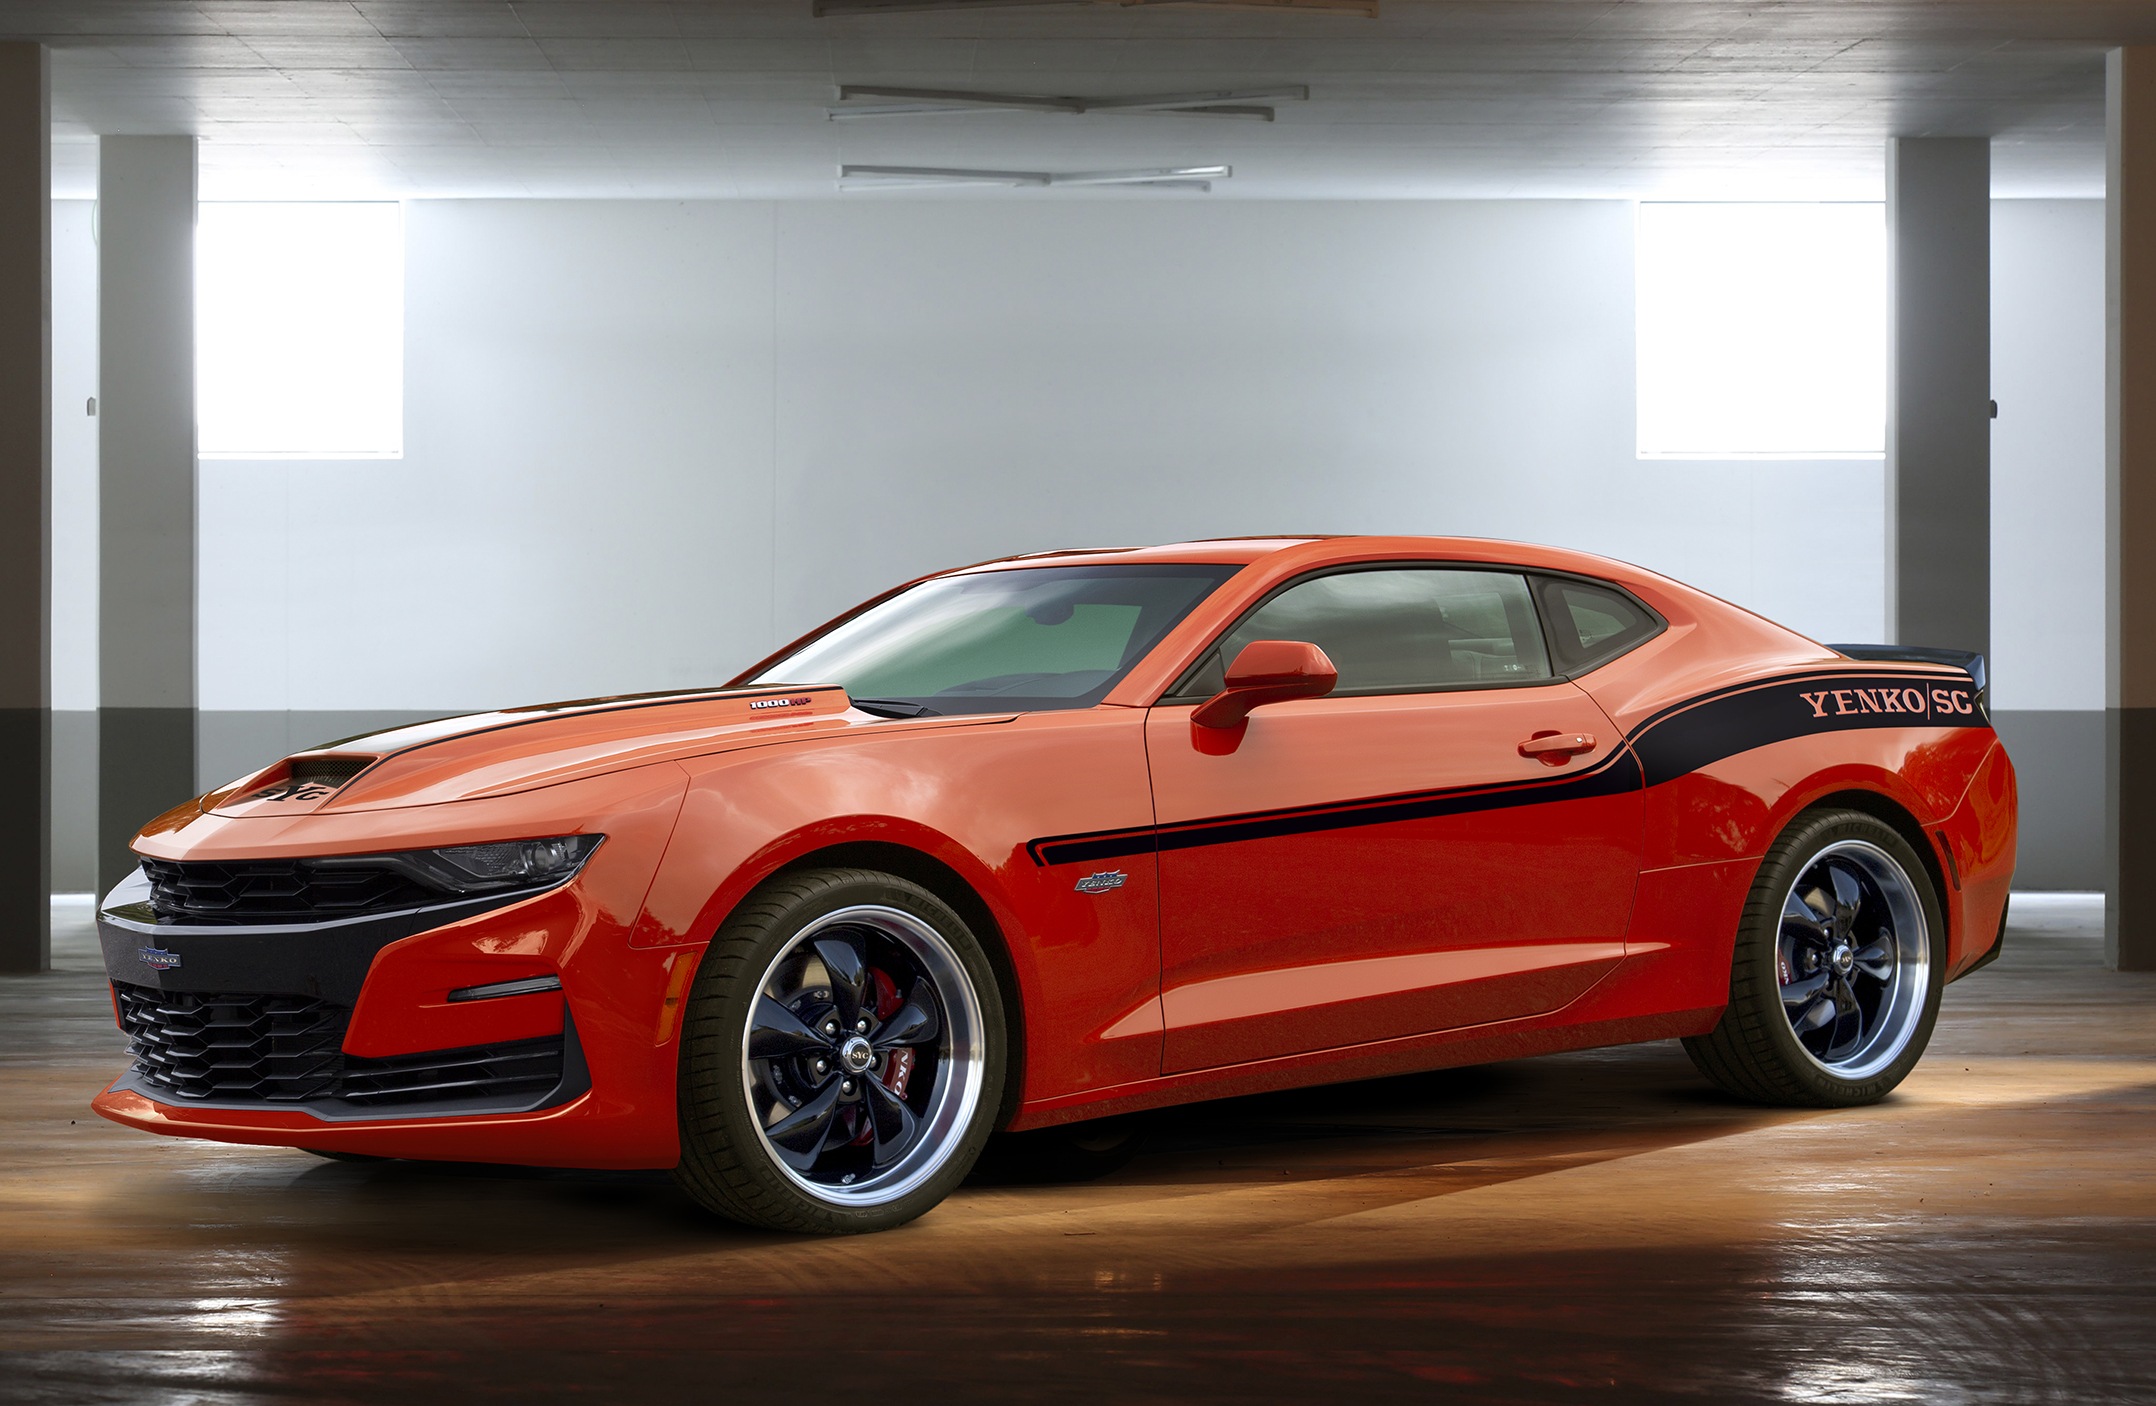 The 1,000-Horsepower 2019 Yenko/SC Camaro Is Now on Sale ...